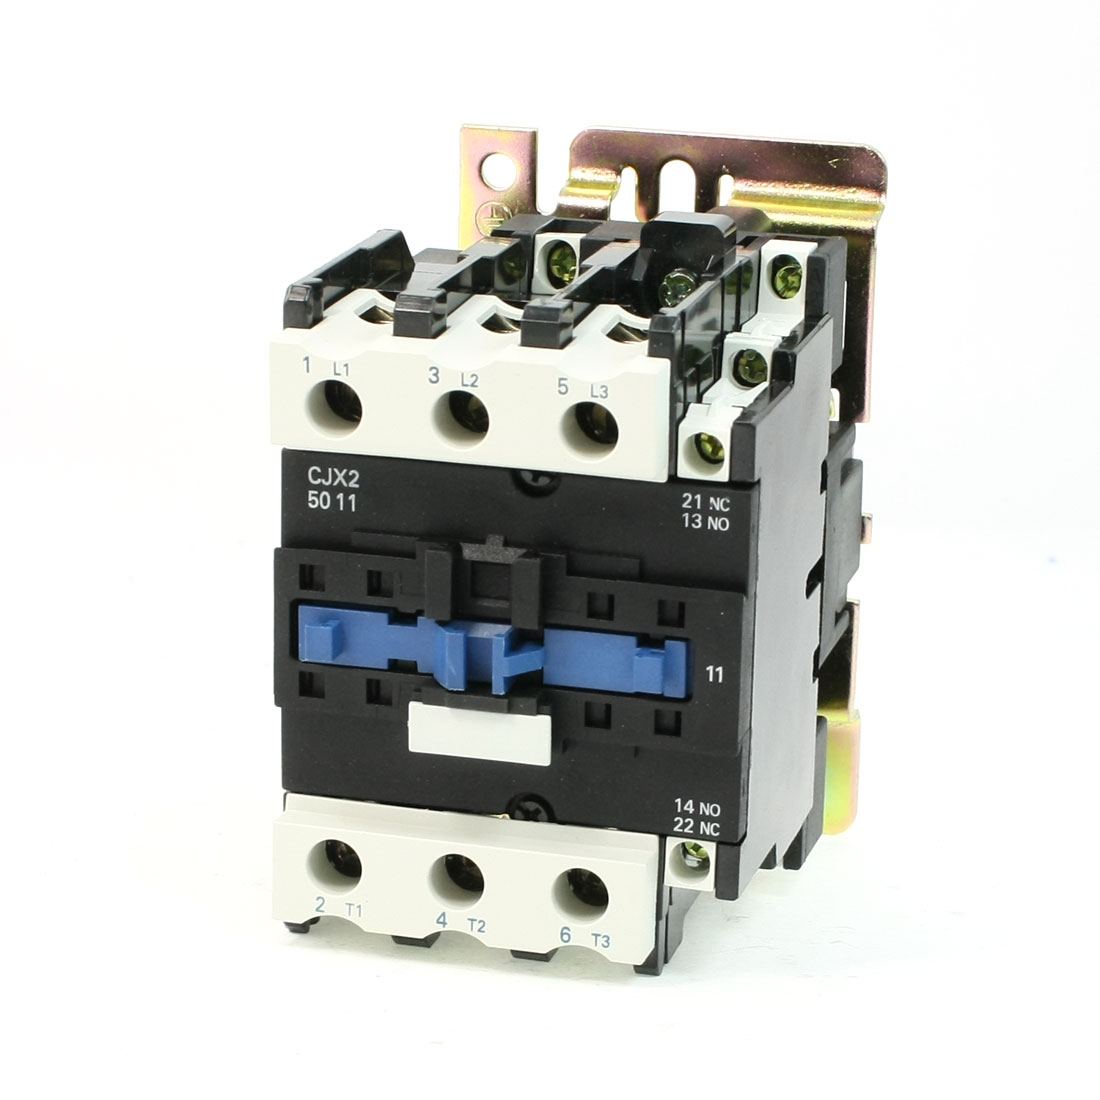 CJX2-5011 DIN Rail Mount AC Contactor 3 Pole One NO 110V Coil 80A